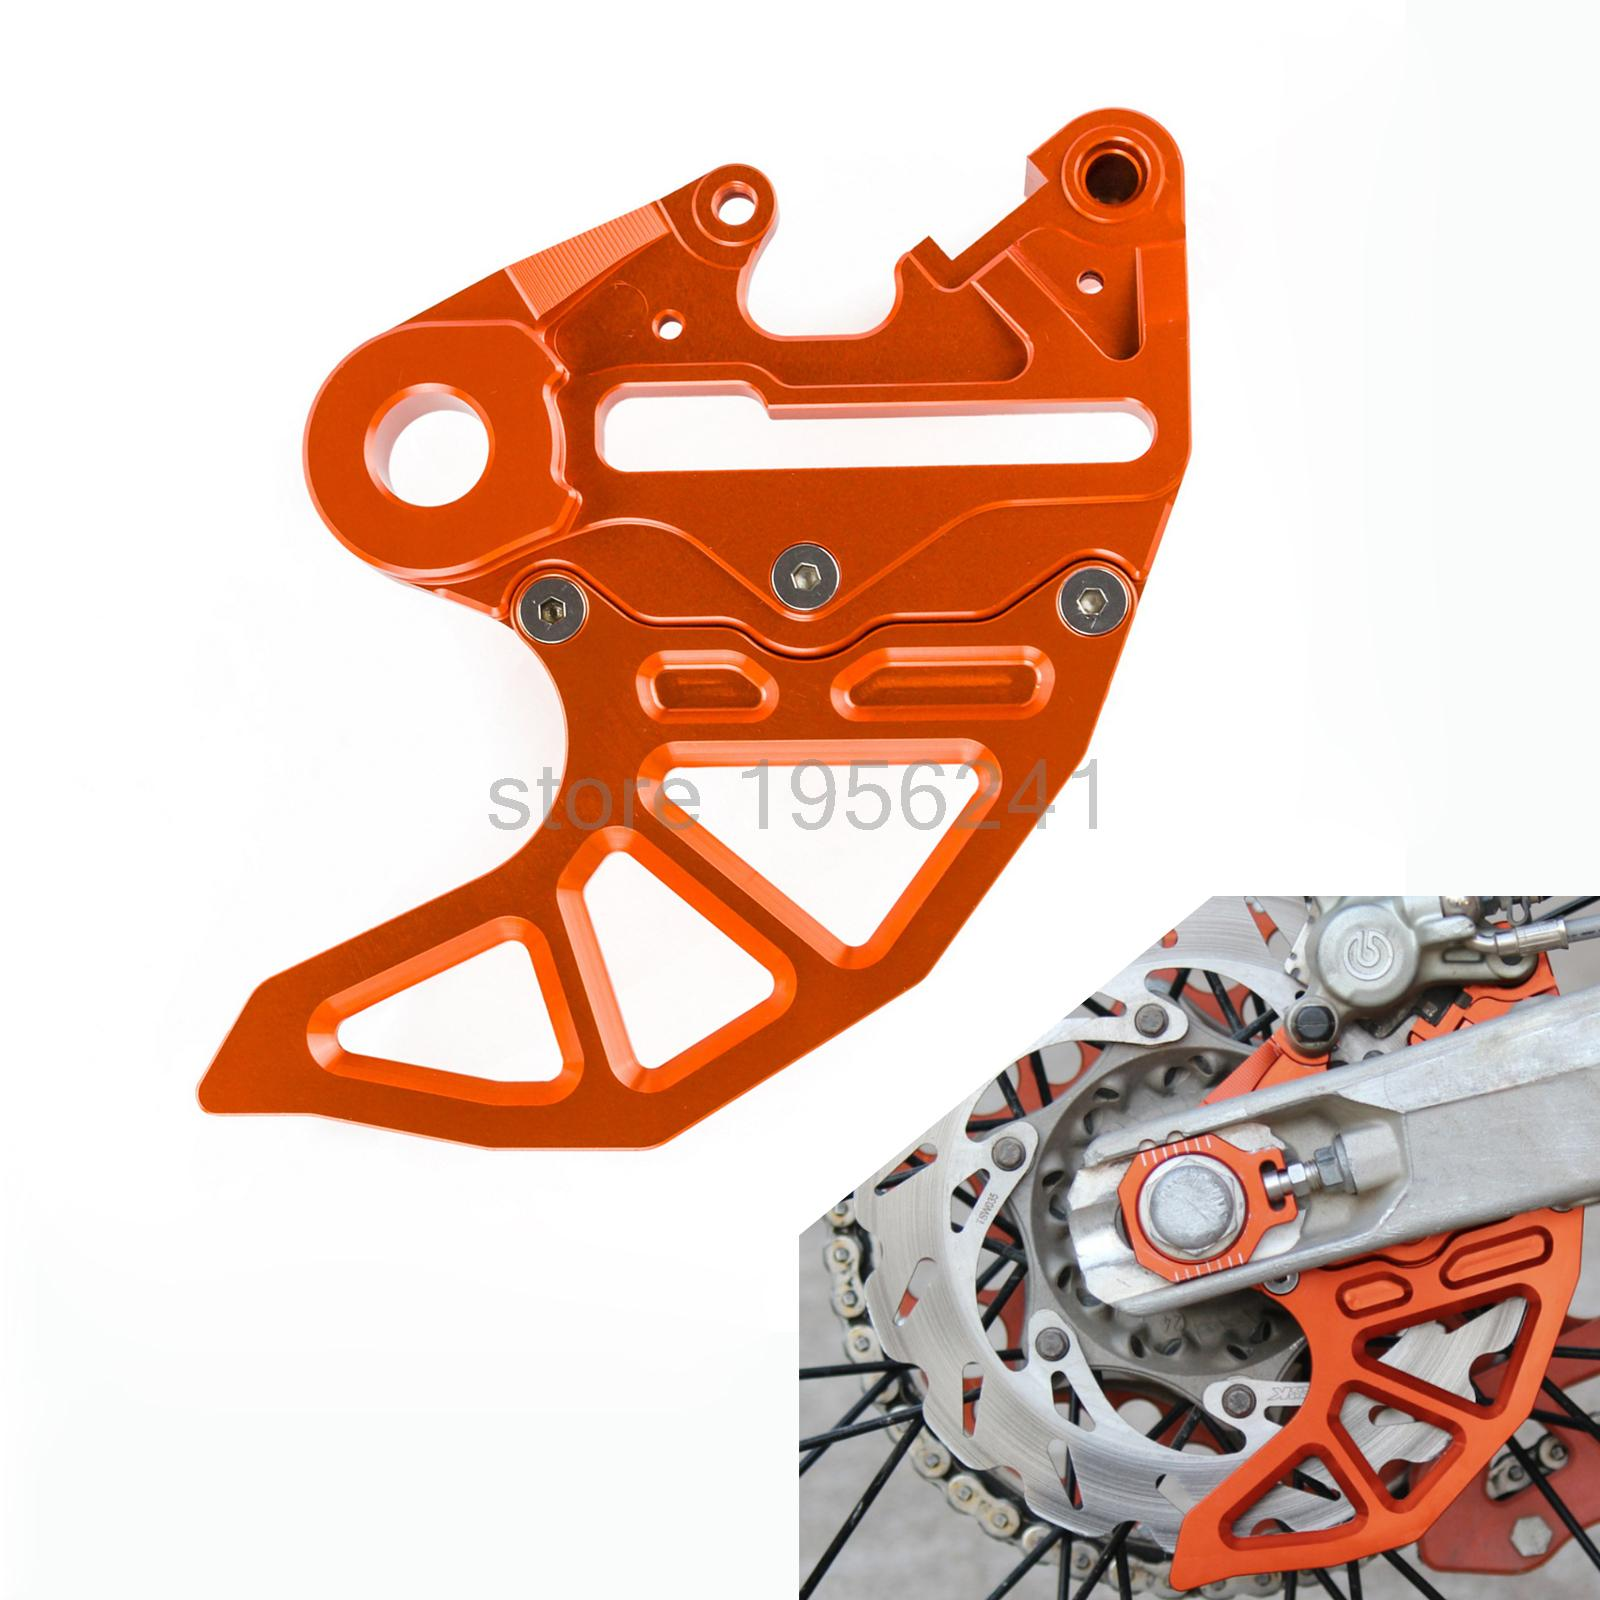 CNC Brake Caliper Support with Brake Disc Guard Fits KTM 125 150 250 350 450 SX/SX-F/SMR 2013-2016 billet cnc rear brake disc guard w caliper bracket for ktm 125 450 sx sx f smr xc xc f 2013 2014 2015 2016